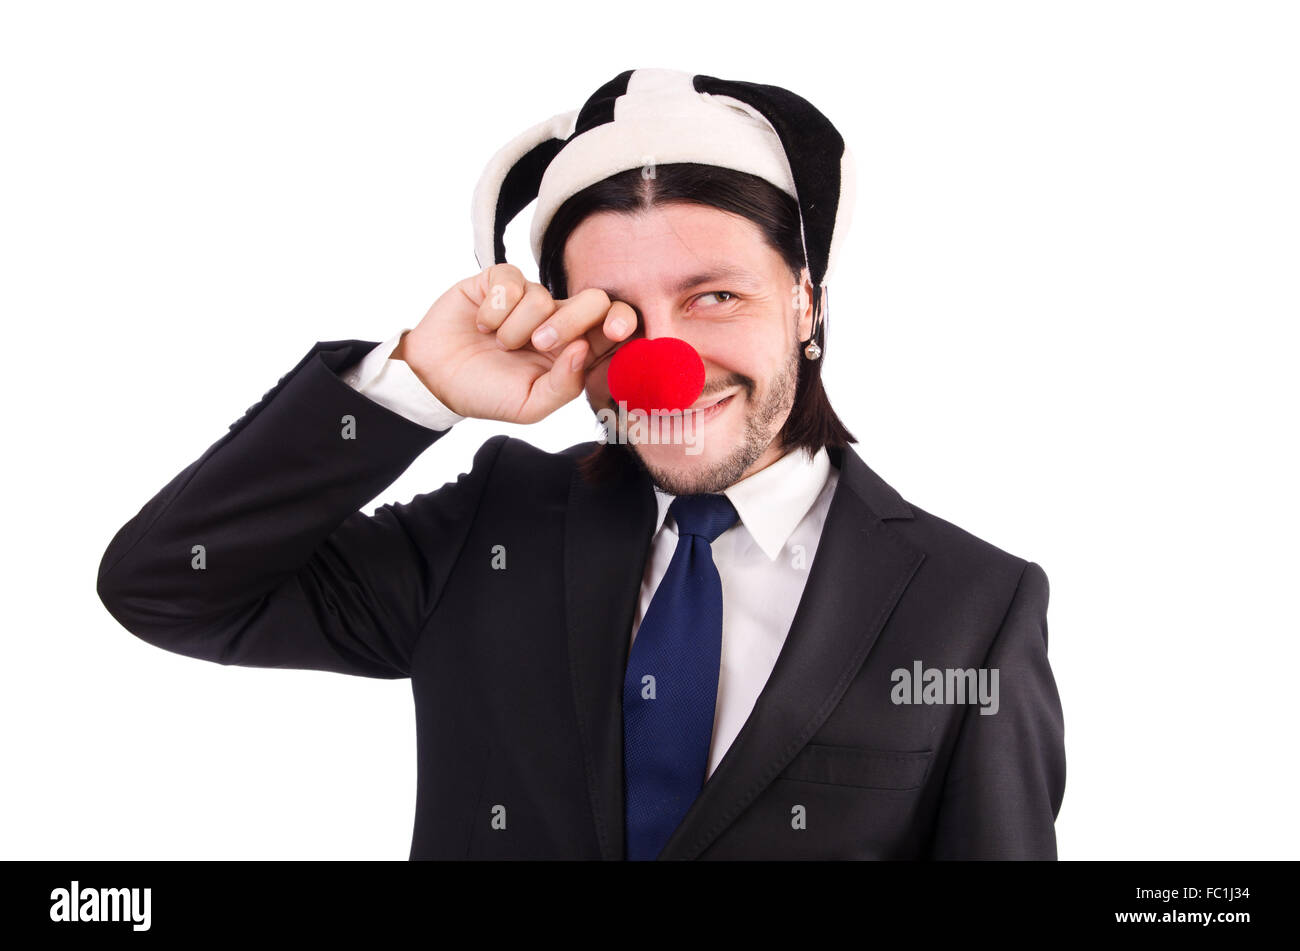 Funny clown businessman isolated on the white background - Stock Image